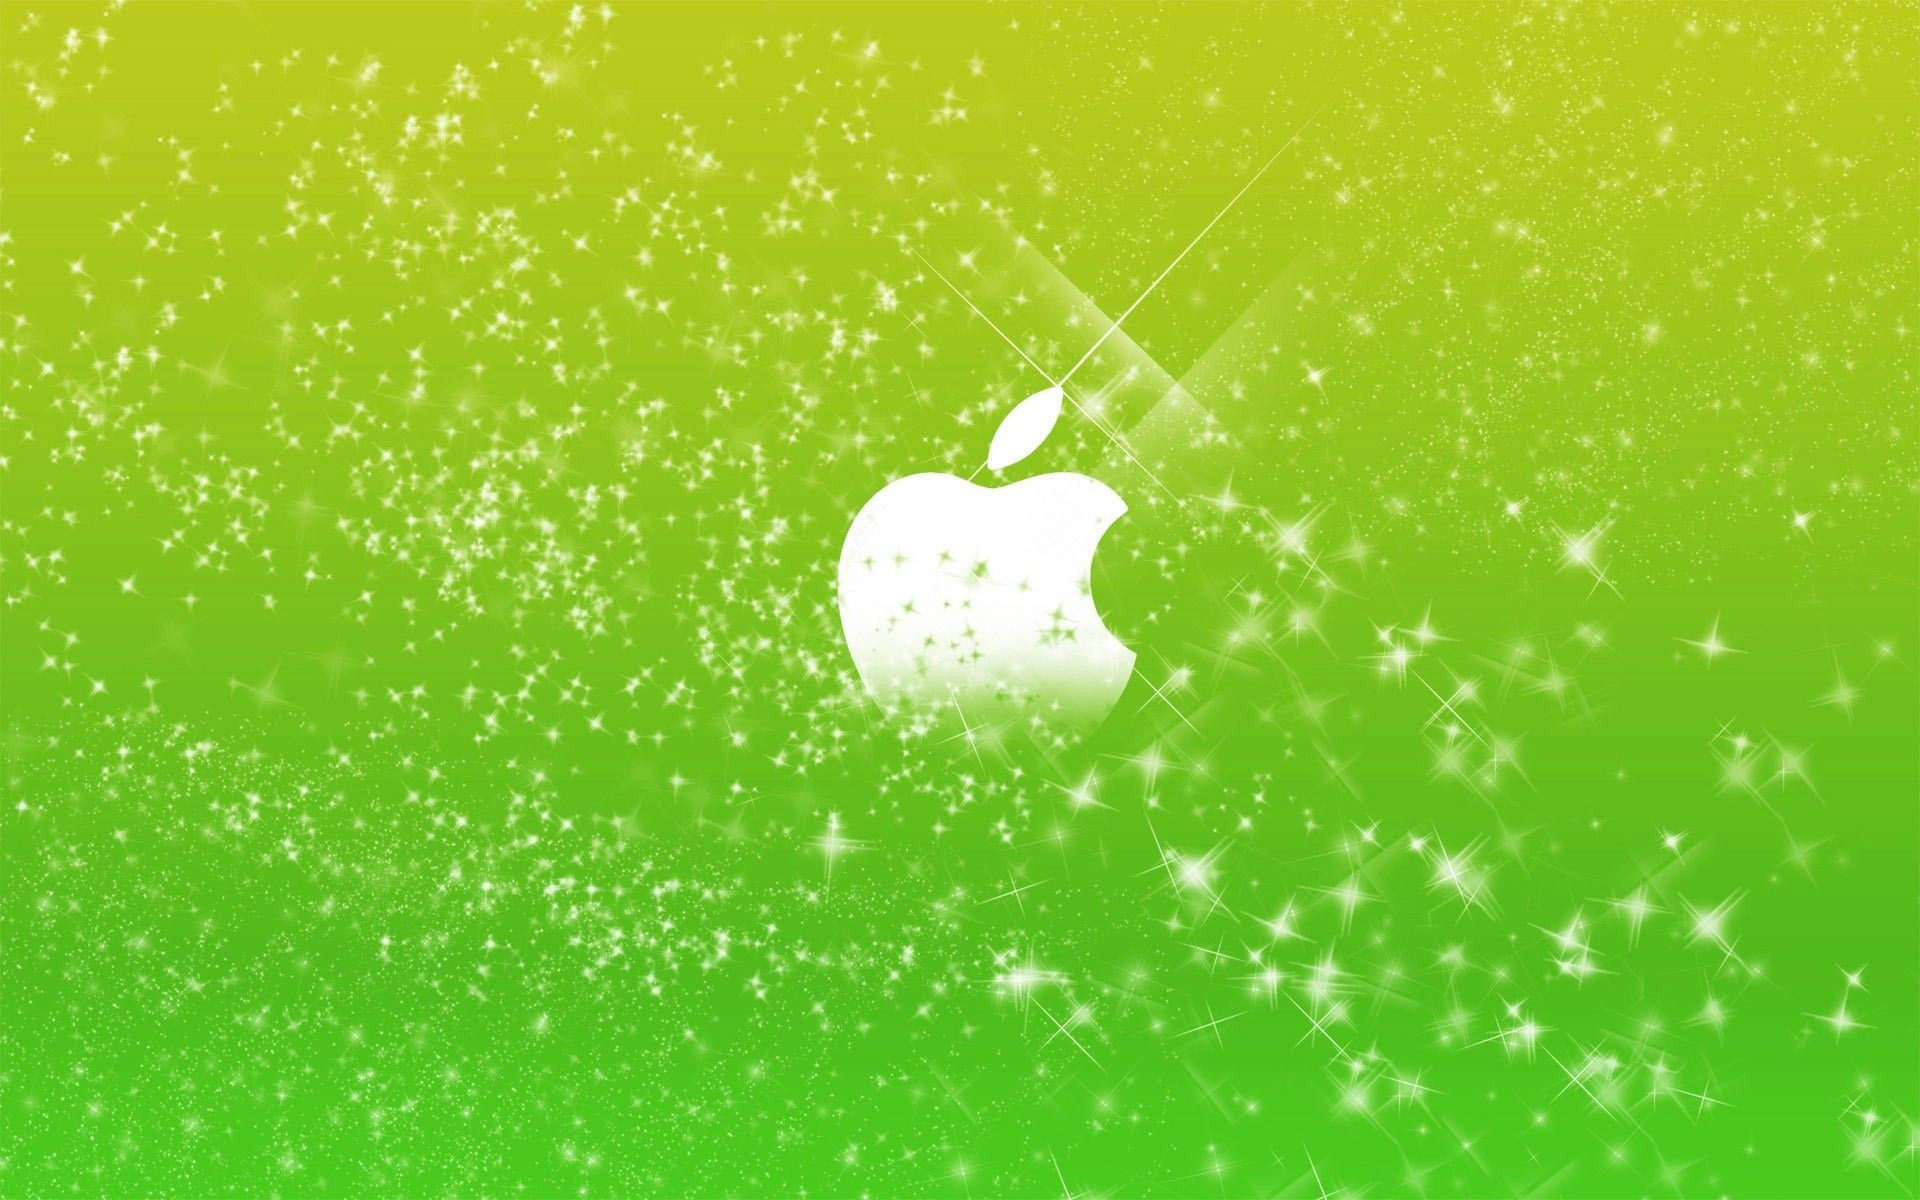 Res: 1920x1200, Find out: Apple Logo in Green Glow wallpaper on http://hdpicorner.